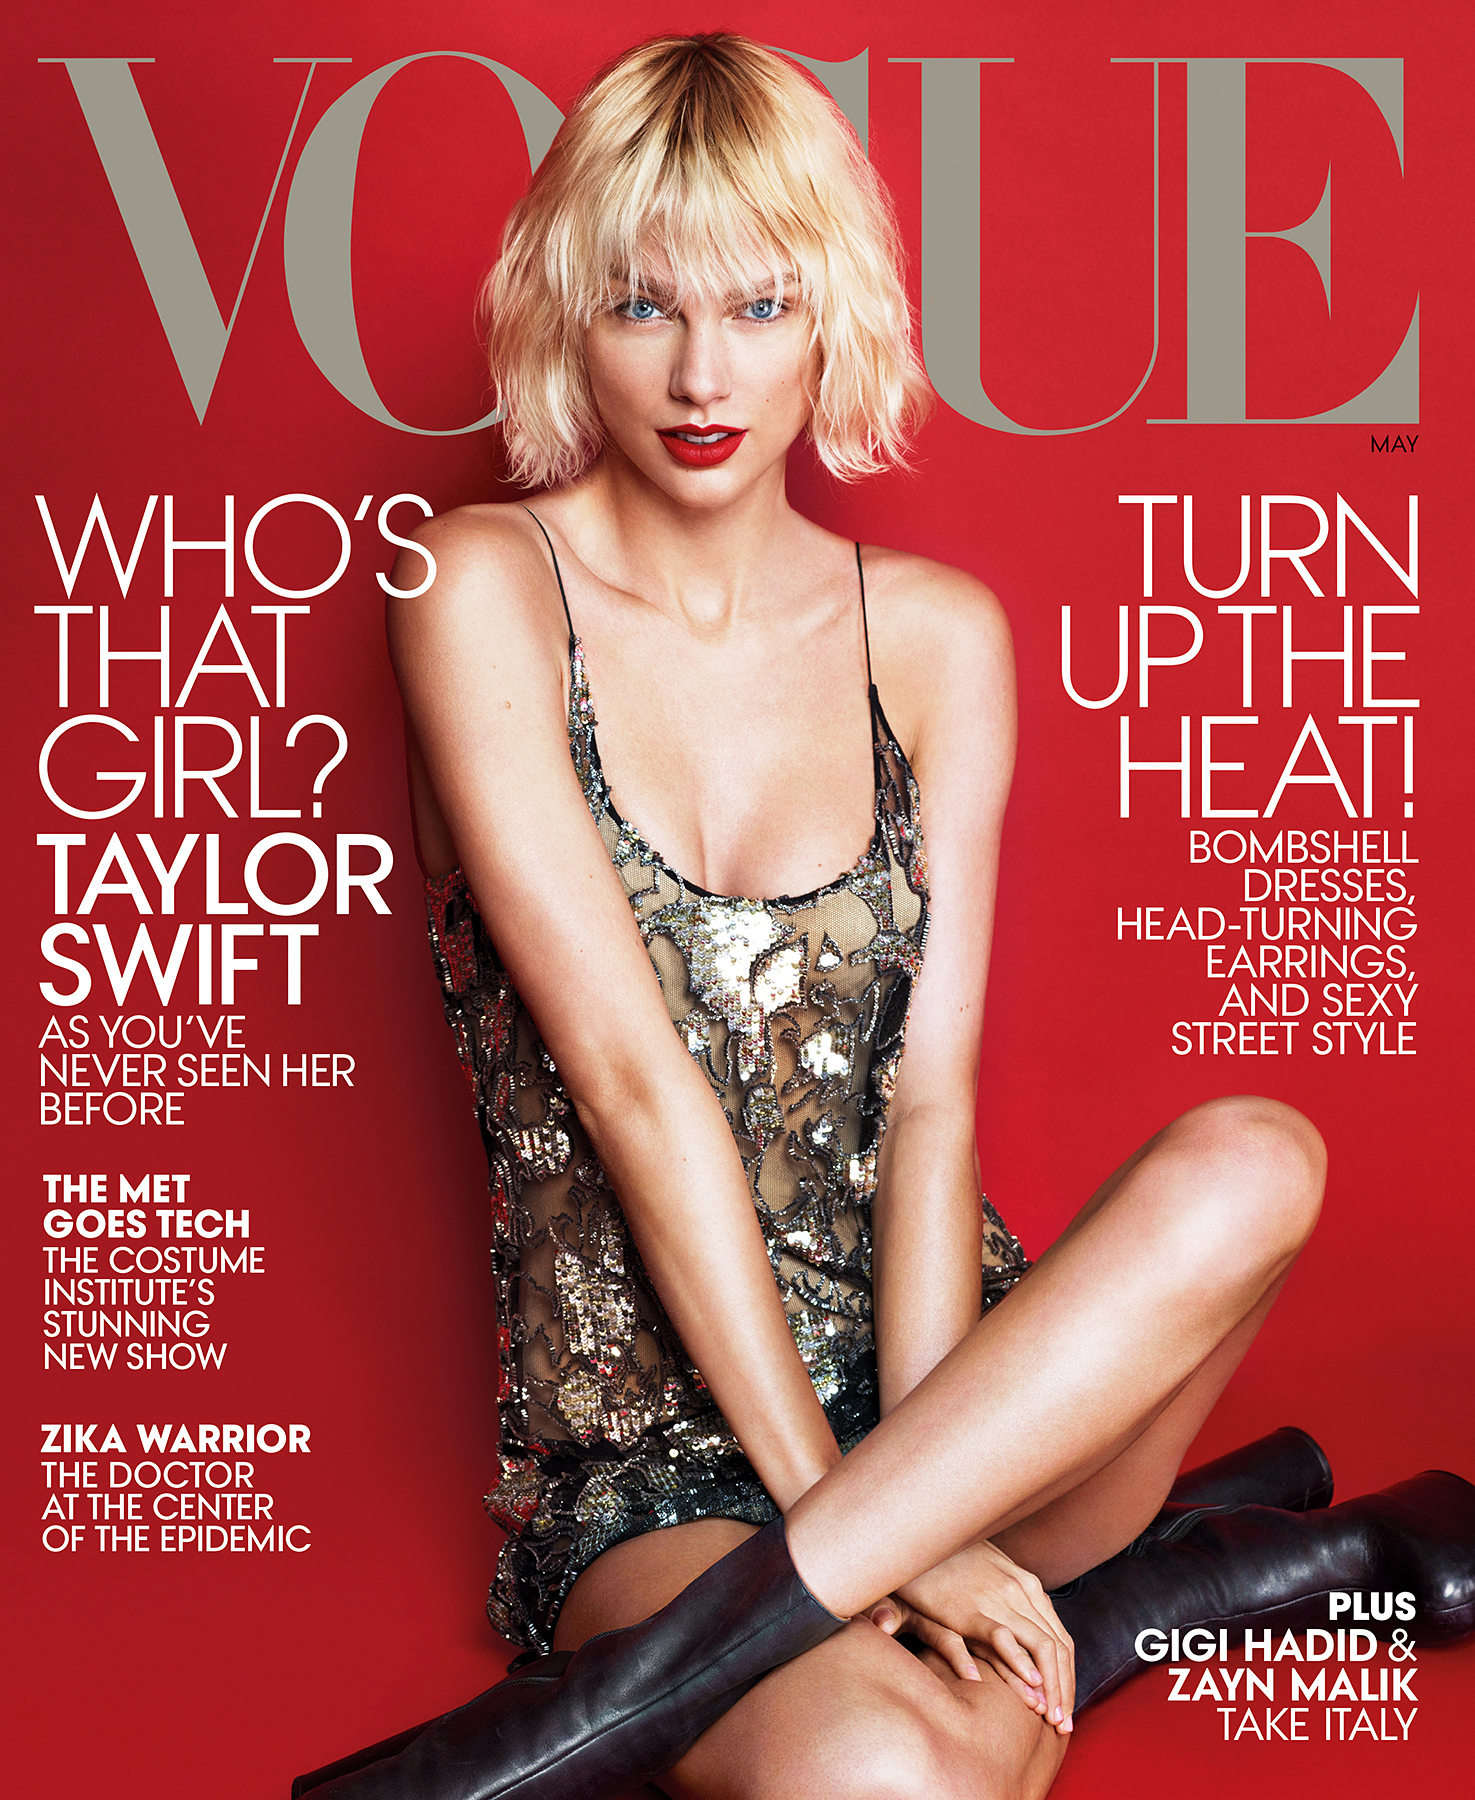 Taylor Swift on the cover of 'Vogue.'